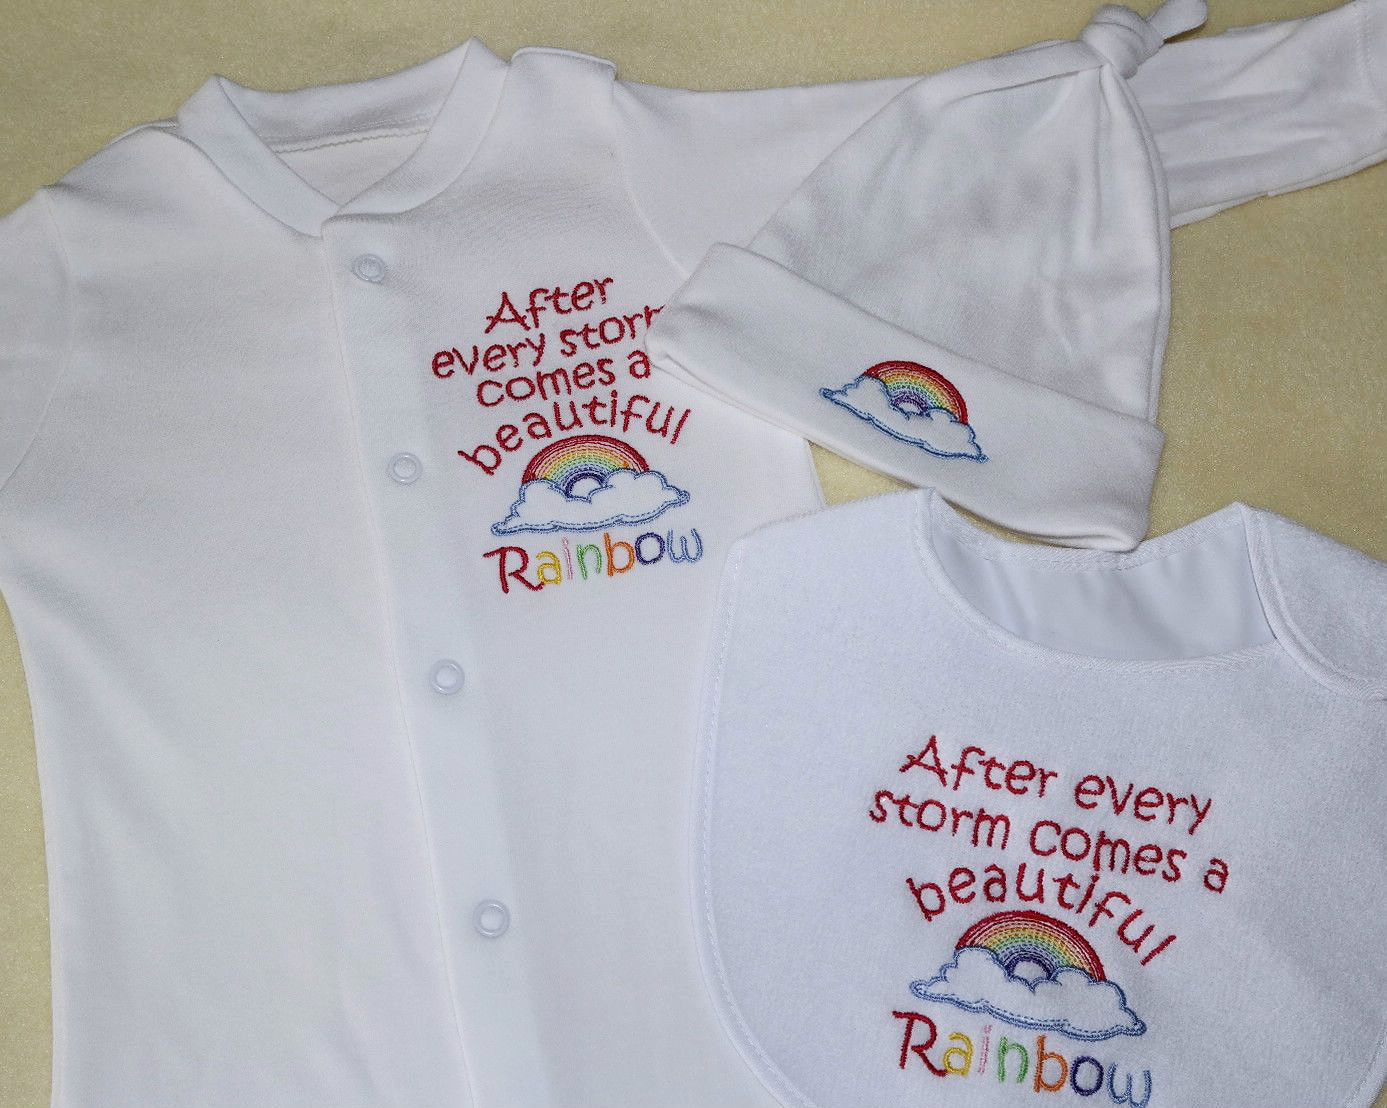 55acae67a After a storm comes a beautiful rainbow embroidered sleepsuit,bib and hat  set